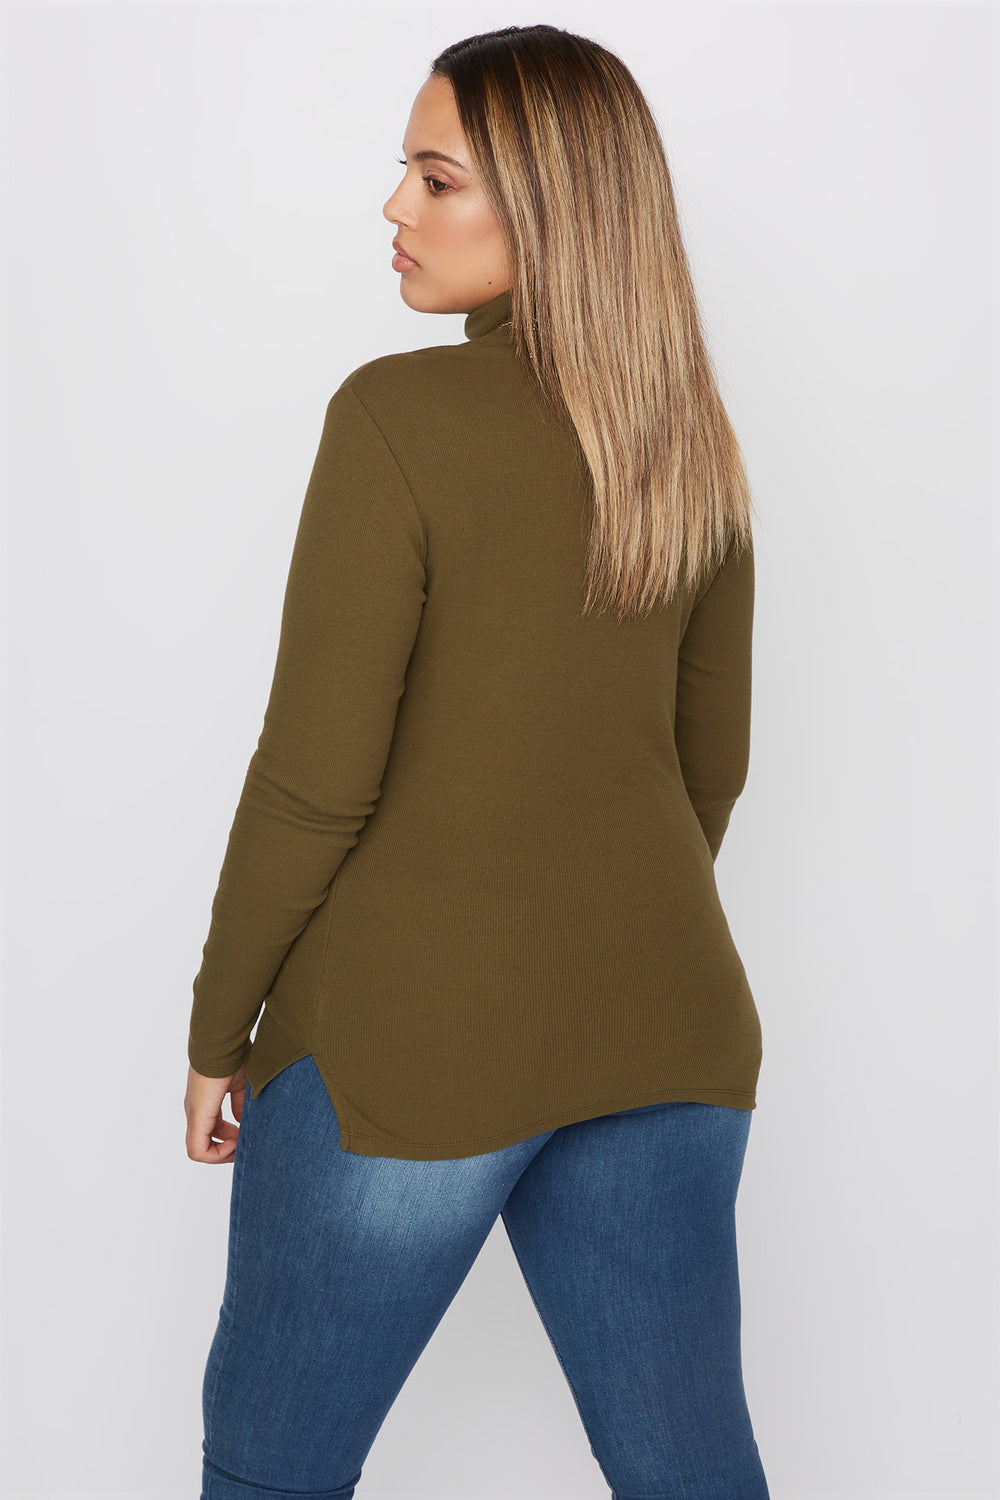 Plus Size Basic Ribbed Turtleneck Long Sleeve Top Green